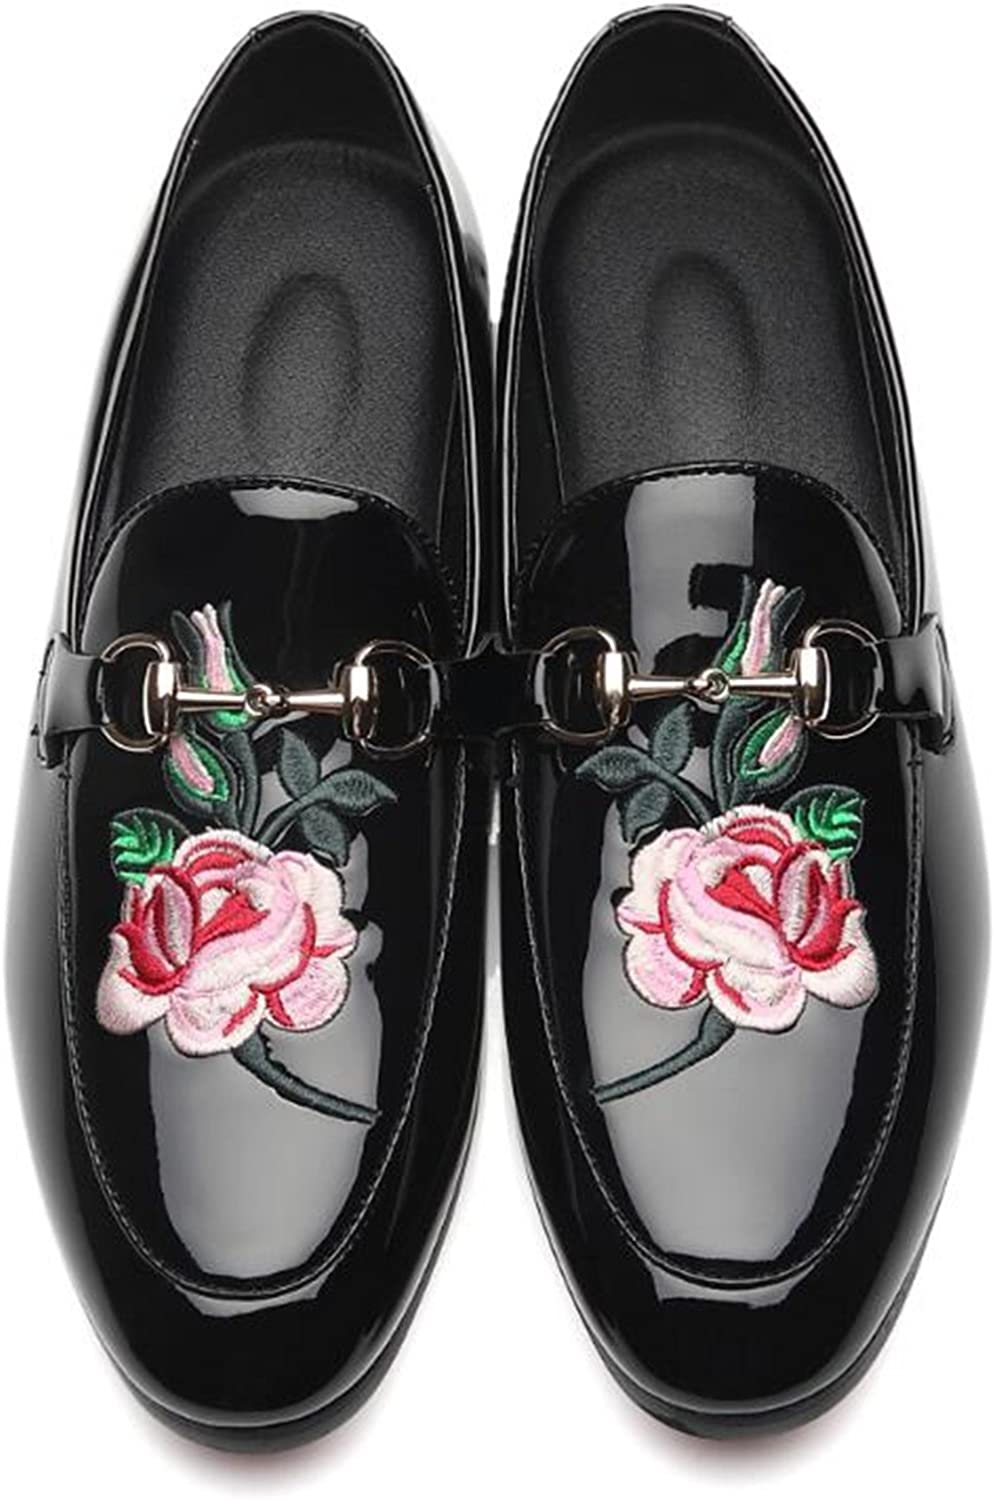 Mens New Embroidery Fashion Slip-on Loafers Patent Leather Shoes Tuxedo Dress Shoes